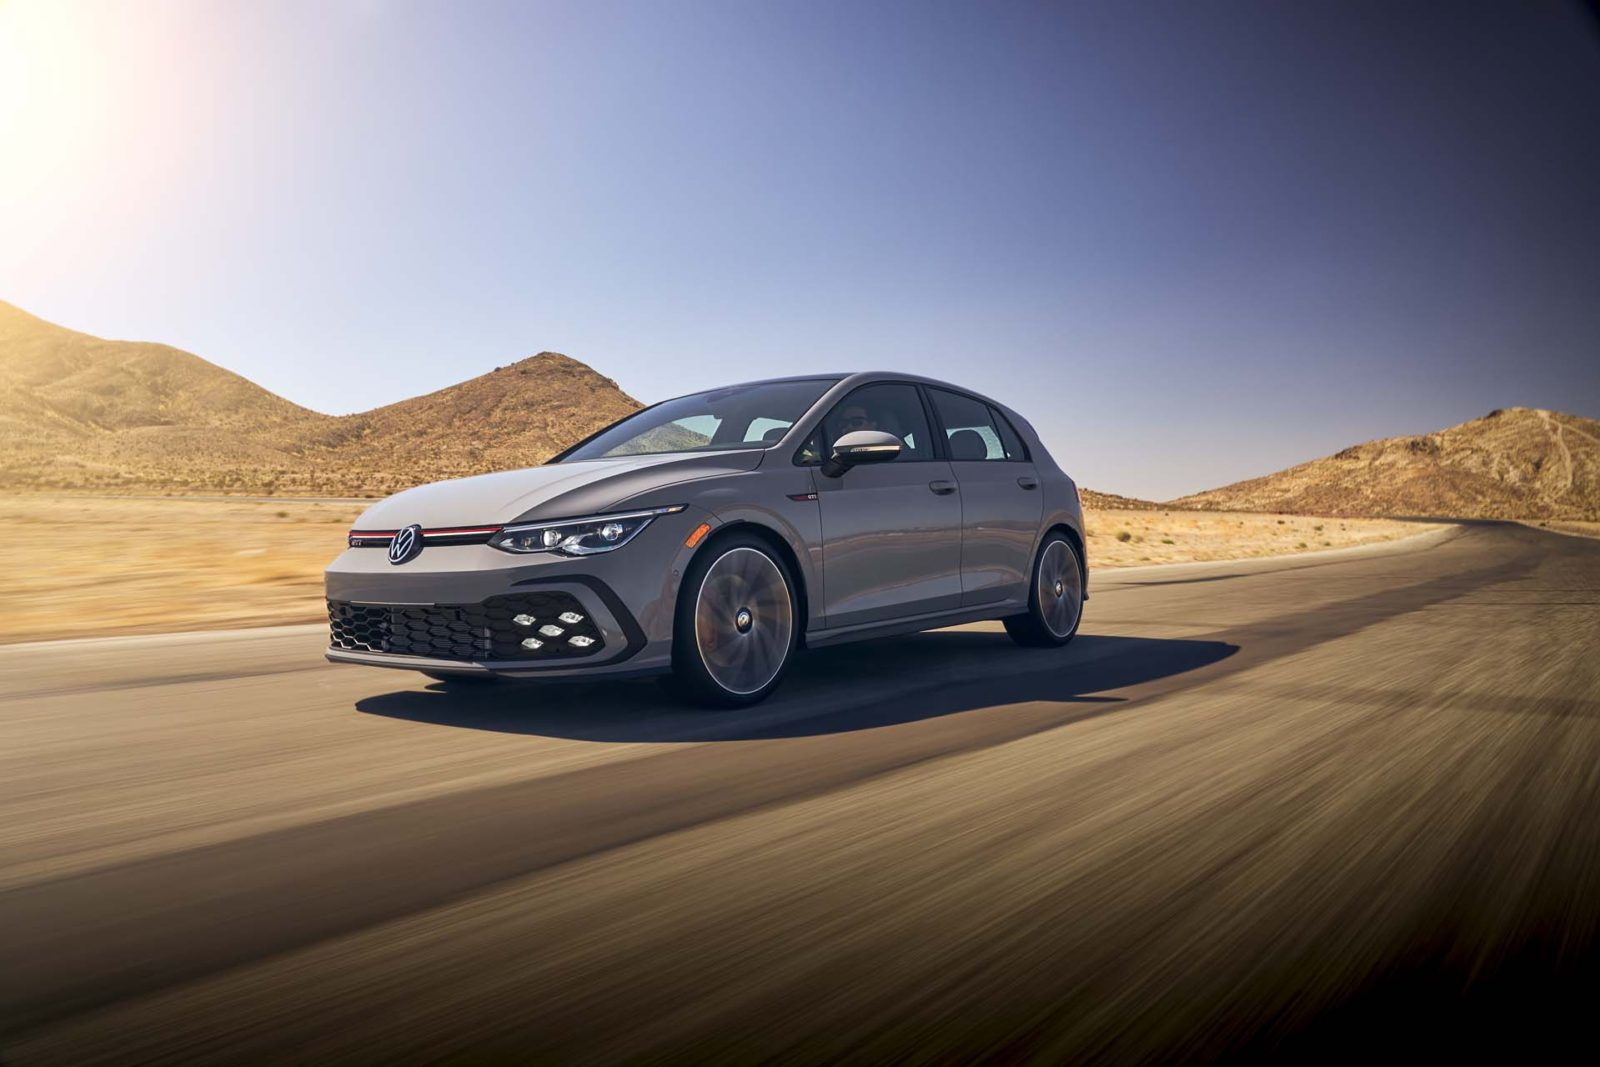 2022-vw-gti-priced,-valhalla-is-coming,-bolt-ev-fire-risks-persist:-what's-new-@-the-car-connection